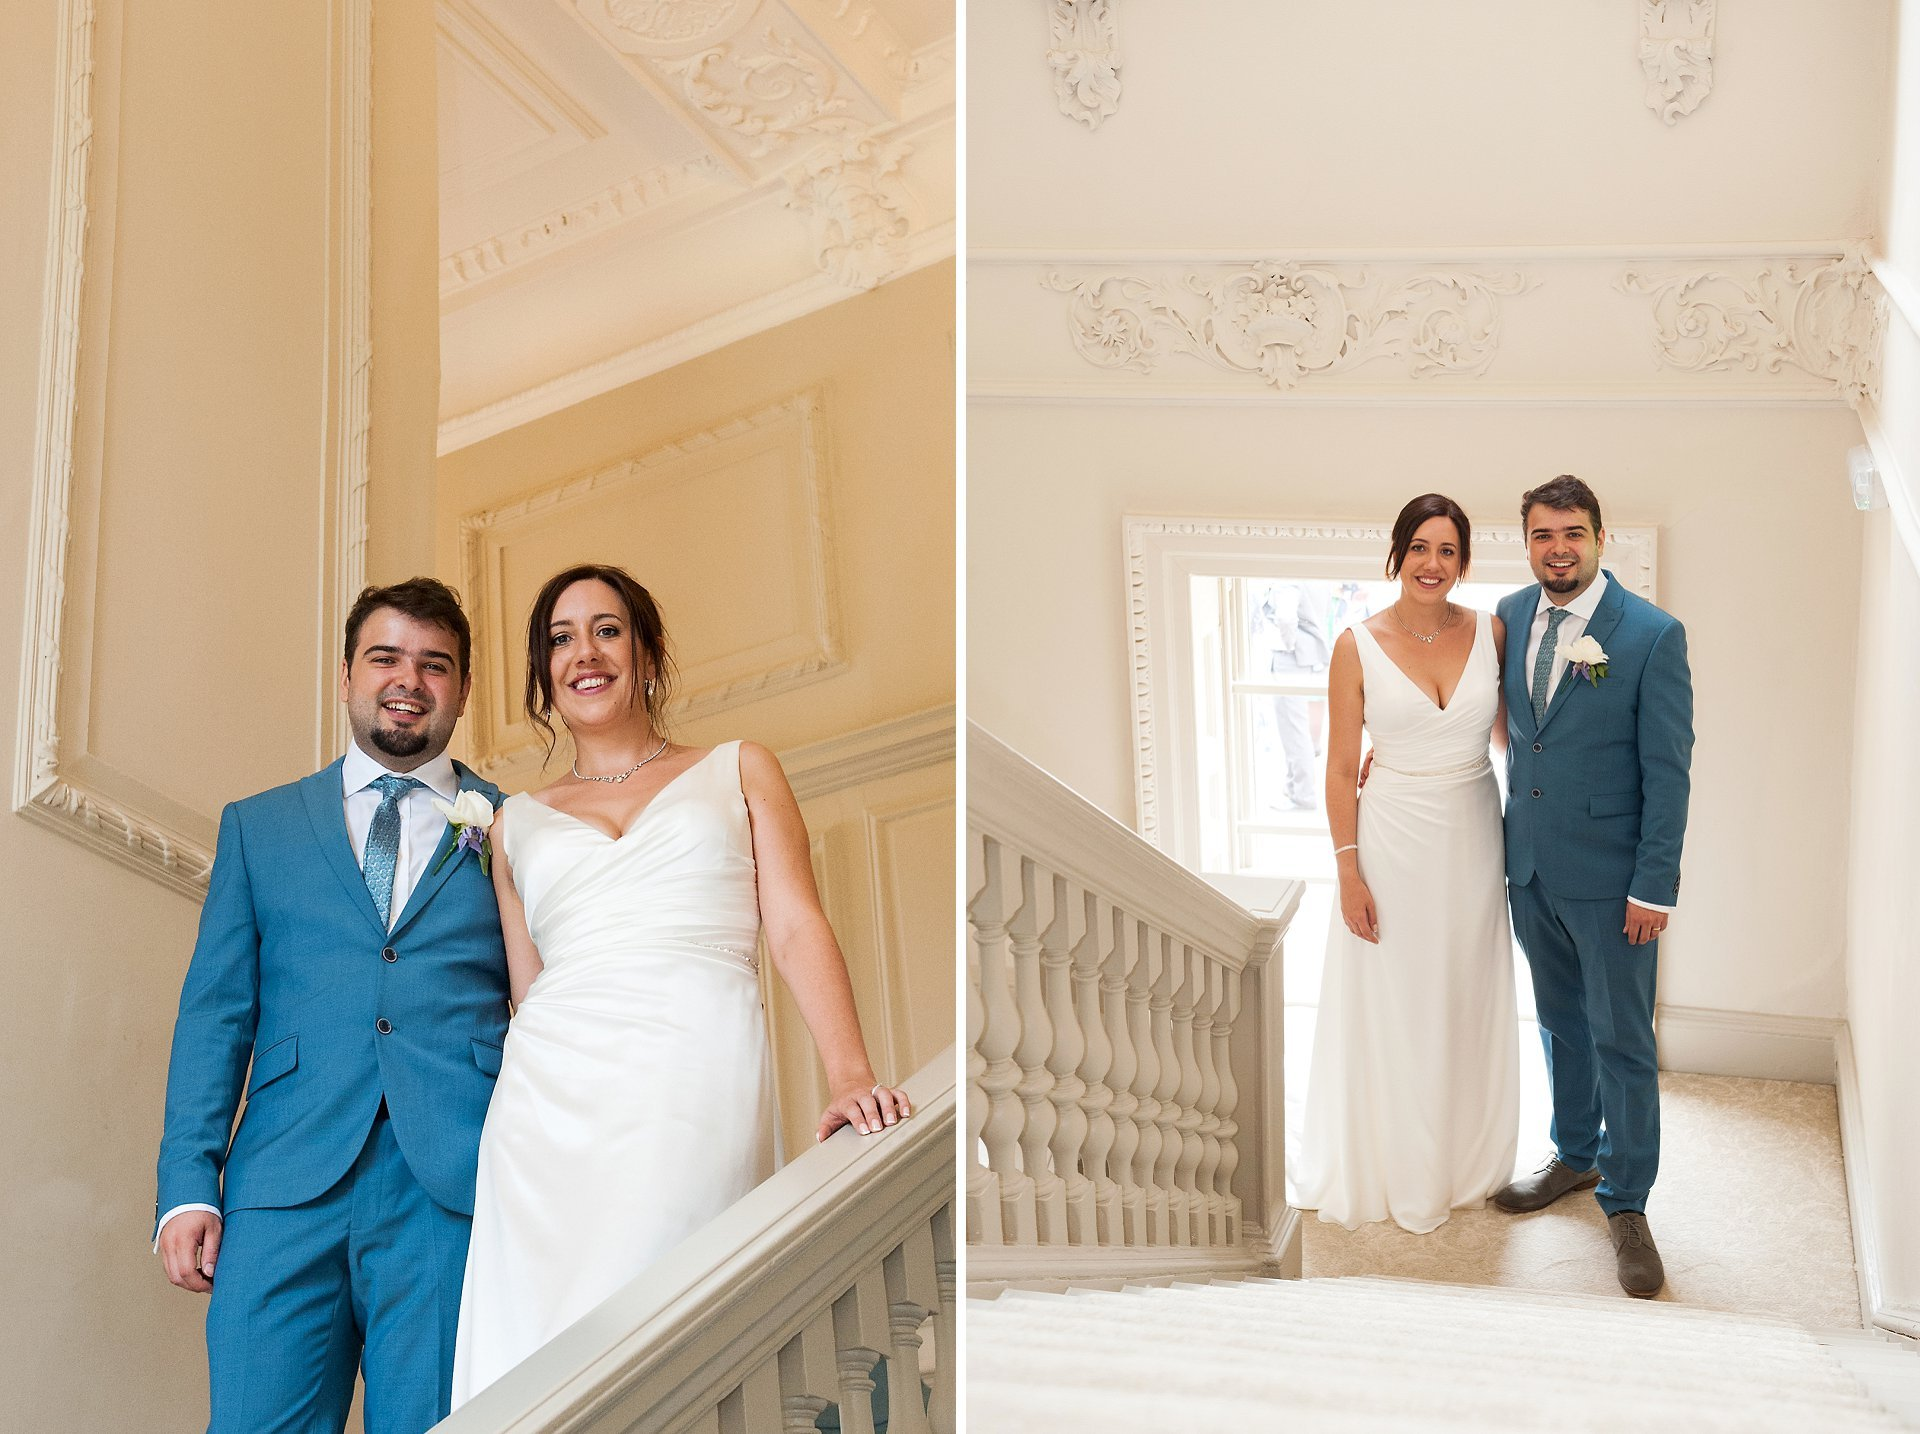 The stunning staircase at Morden Hall is great for photos